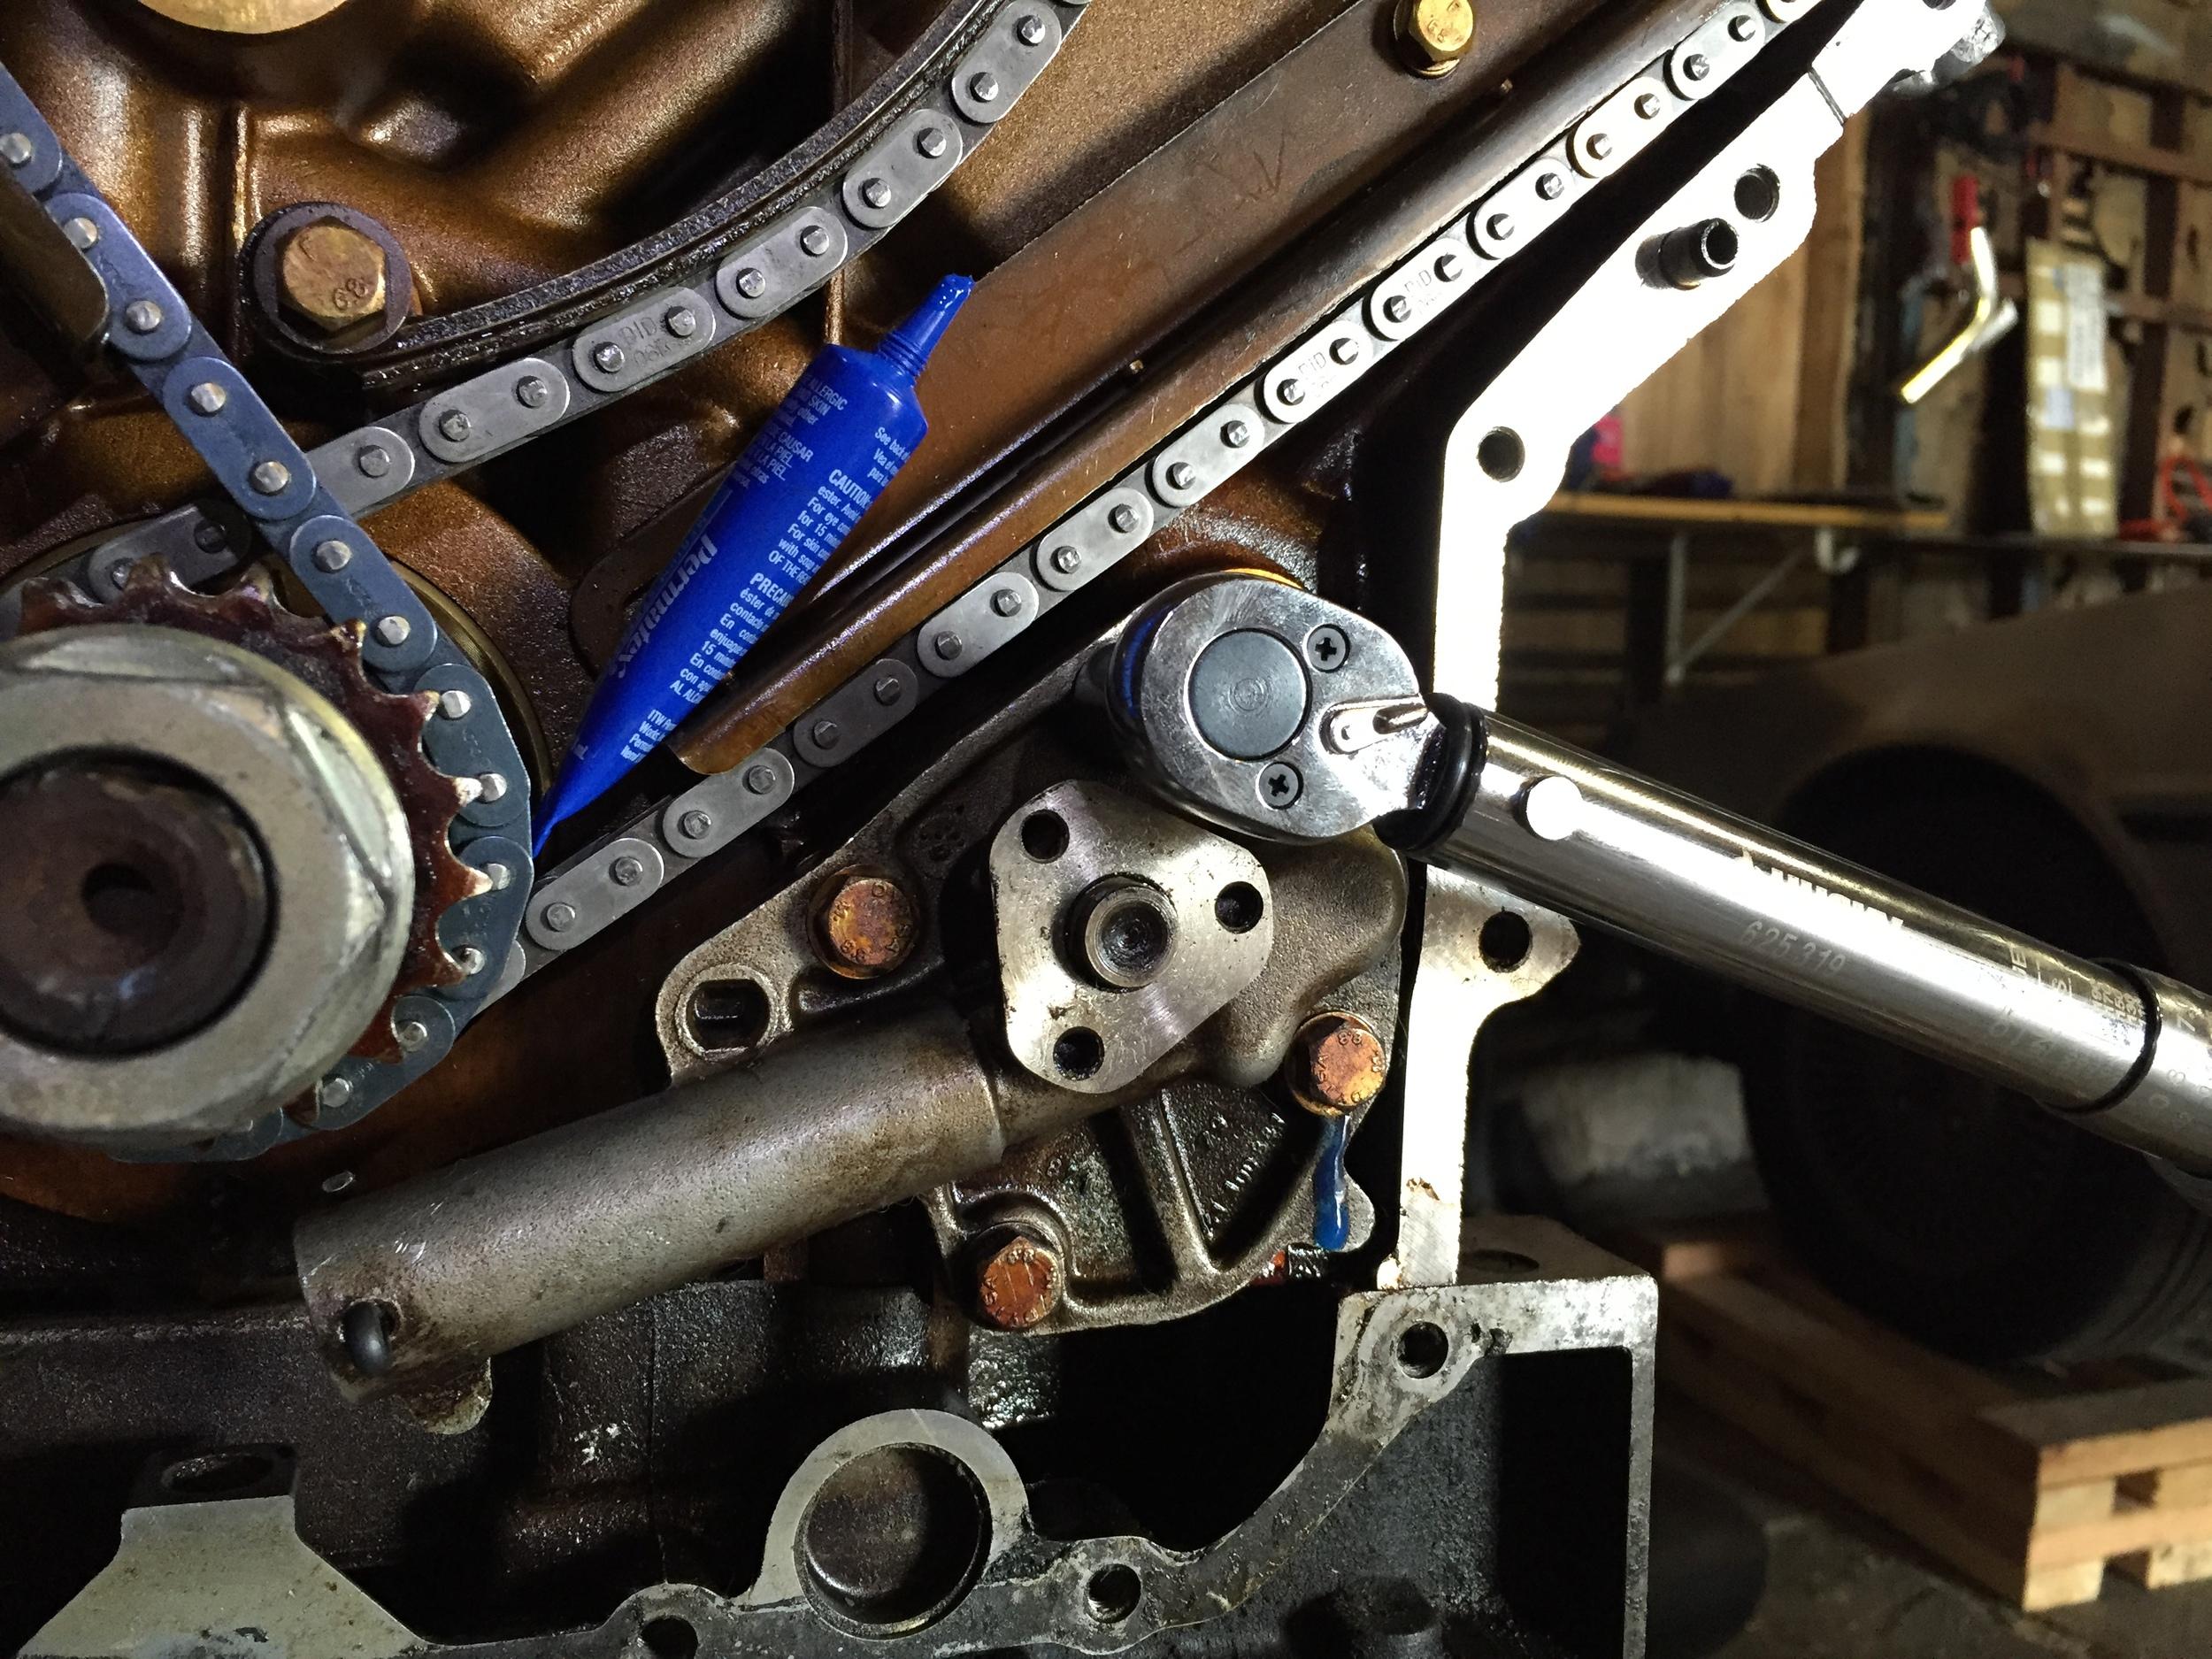 Torquing down the oil pump. The tube of blue LockTite can be seen resting on the chain guide,